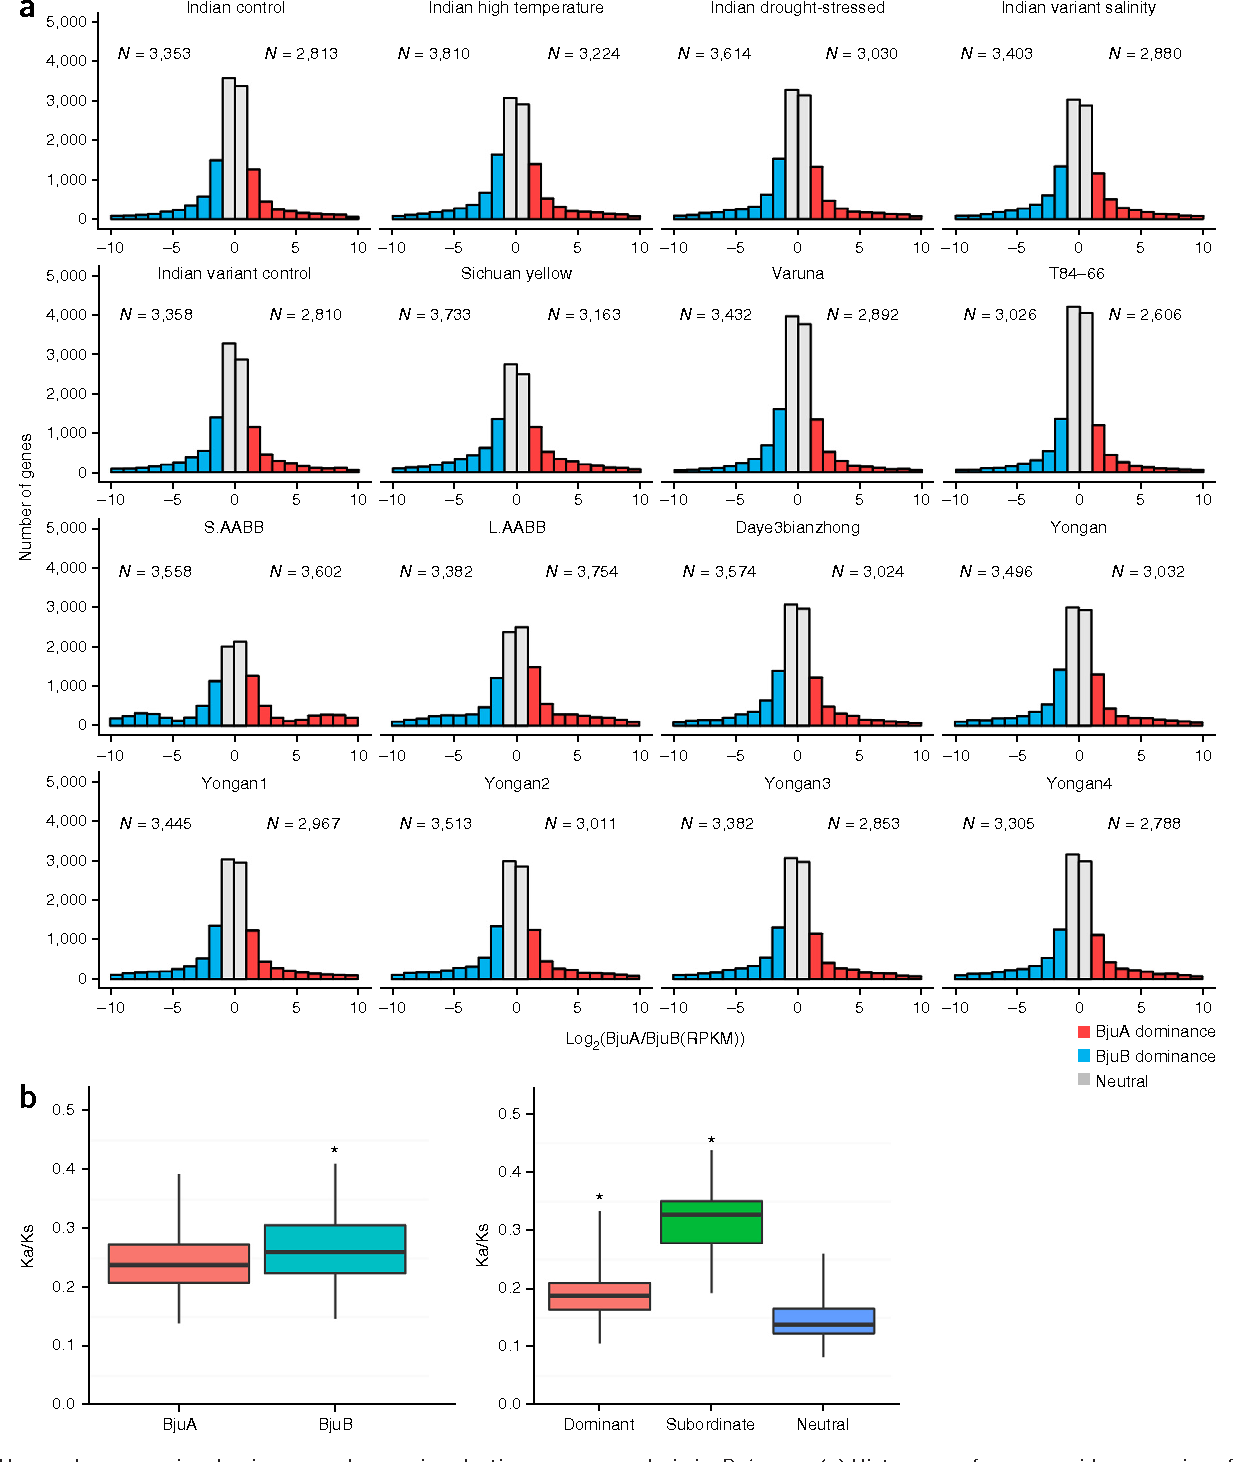 Figure 3 Homoeolog expression dominance and genomic selective pressure analysis in B. juncea. (a) Histograms of genome-wide expression of syntenic homoeologous genes among indicated B. juncea tissues and developmental stages. N values indicate the number of dominant genes in BjuA and BjuB, respectively. (b) Boxplot of the distribution of Ka/Ks values between subgenomes (BjuA and BjuB) and among homoeolog expression dominance genes as dominant, subordinate and neutral (non-dominance) in B. juncea. In the left boxplot, Ka/Ks values range from 0.139 to 0.393 with median value 0.238 and interquartile range (IQR) value 0.209 for BjuA, and Ka/Ks values range from 0.147 to 0.411 with median value 0.260 and IQR value 0.224 for BjuB. In the right boxplot, Ka/Ks values range from 0.106 to 0.334 with median value 0.189 and IQR value 0.164 for dominant group, and Ka/Ks values range from 0.193 to 0.438 with median value 0.328 and IQR value 0.279 for subordinate group, and Ka/Ks values range from 0.082 to 0.260 with median value 0.139 and IQR value 0.123 for neutral group. *P < 0.001, permutation test with 1,000 permutations.